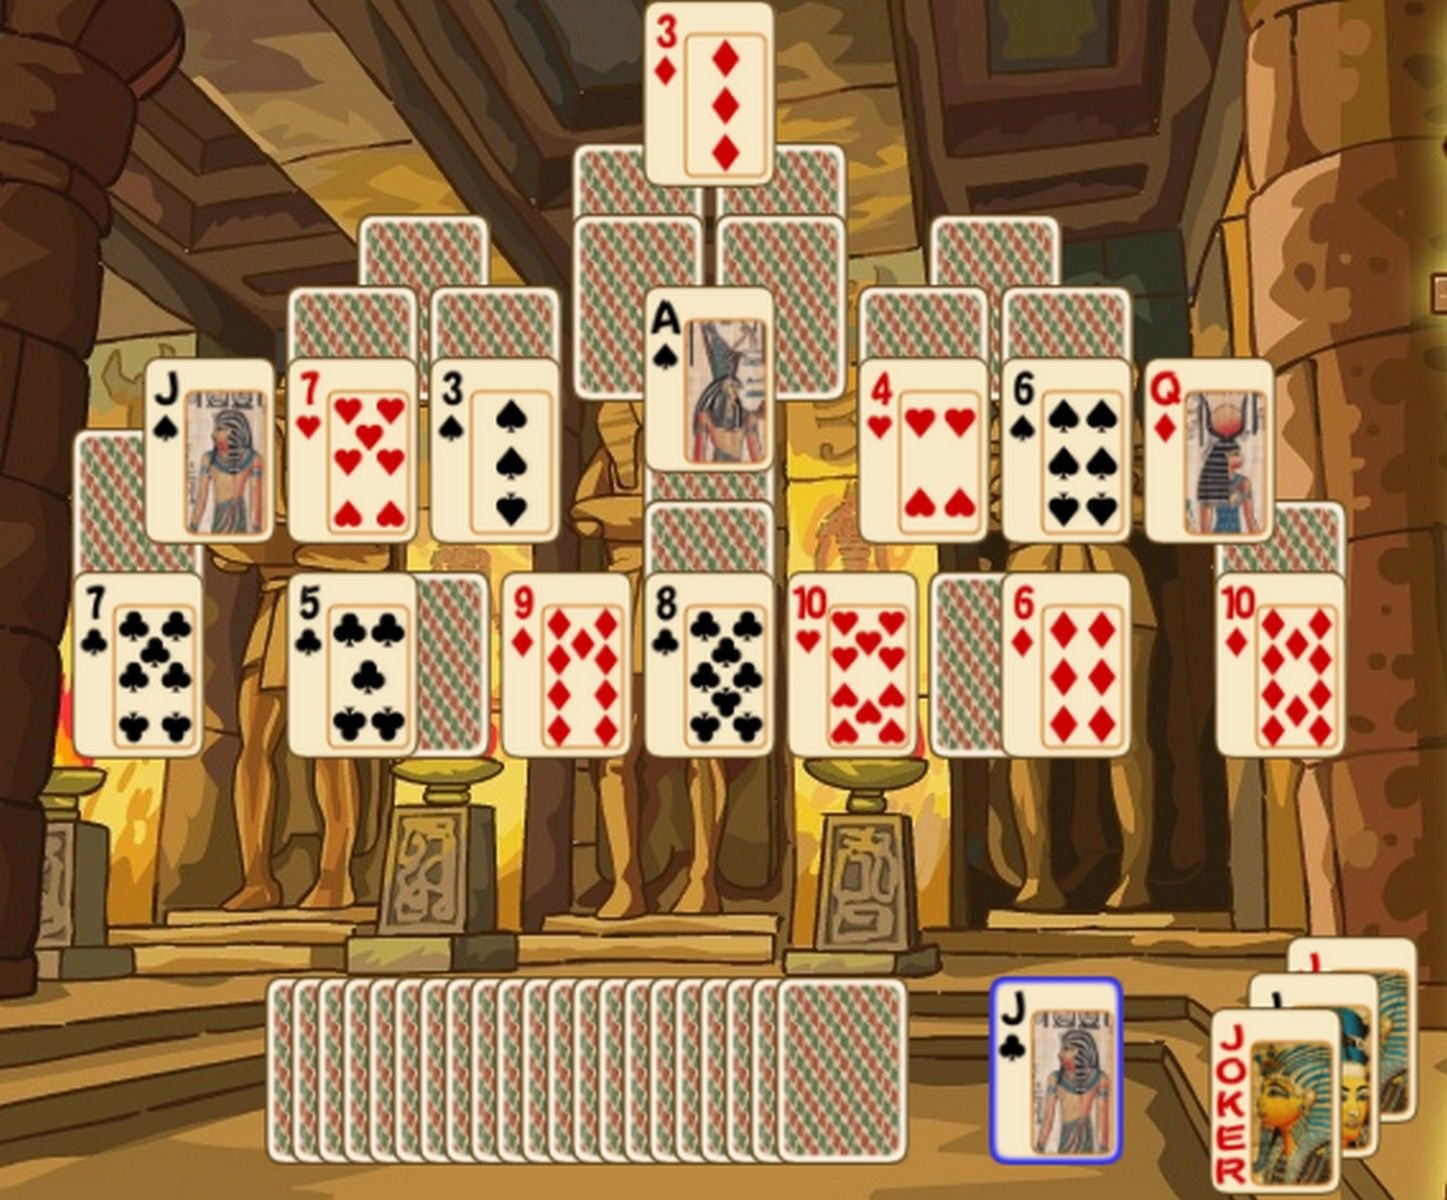 Pyramid Solitaire Game Combine 2 Cards To A Total Value Of 13 An A